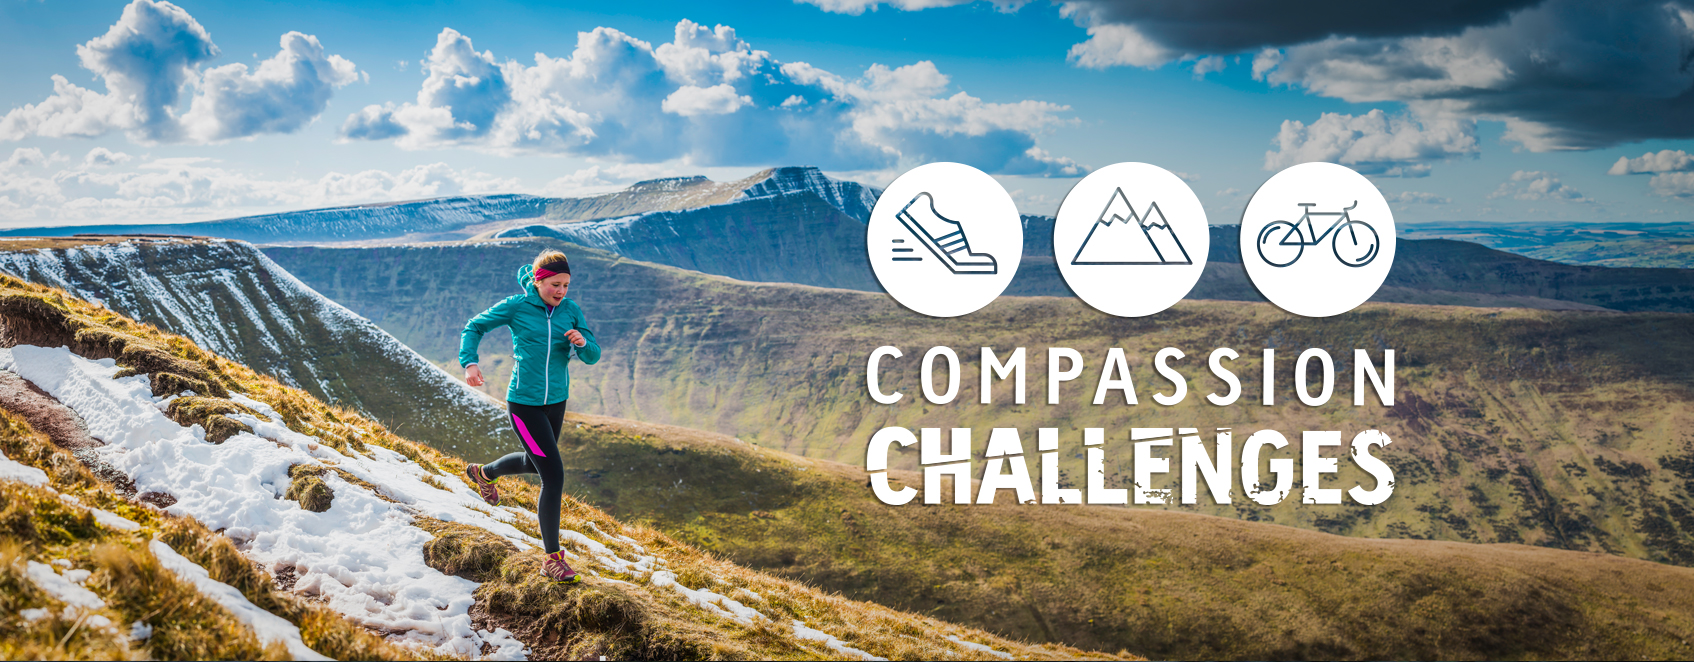 Challenges - Trail Running